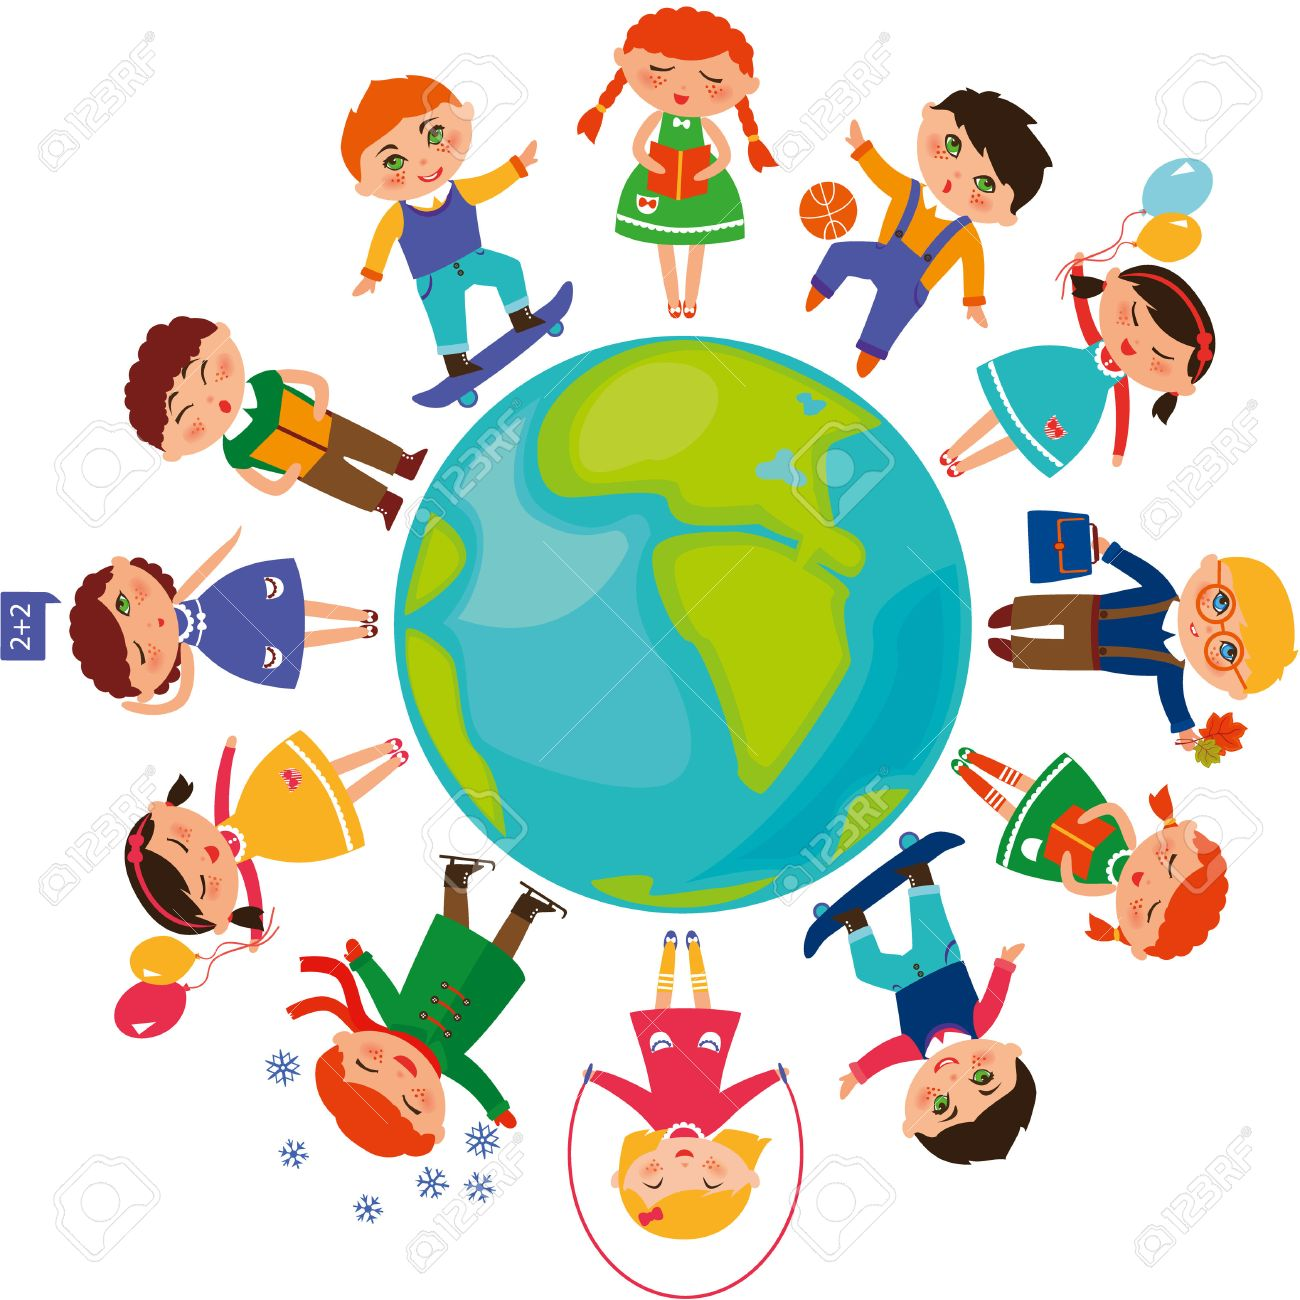 Children of the world clipart 5 » Clipart Station.